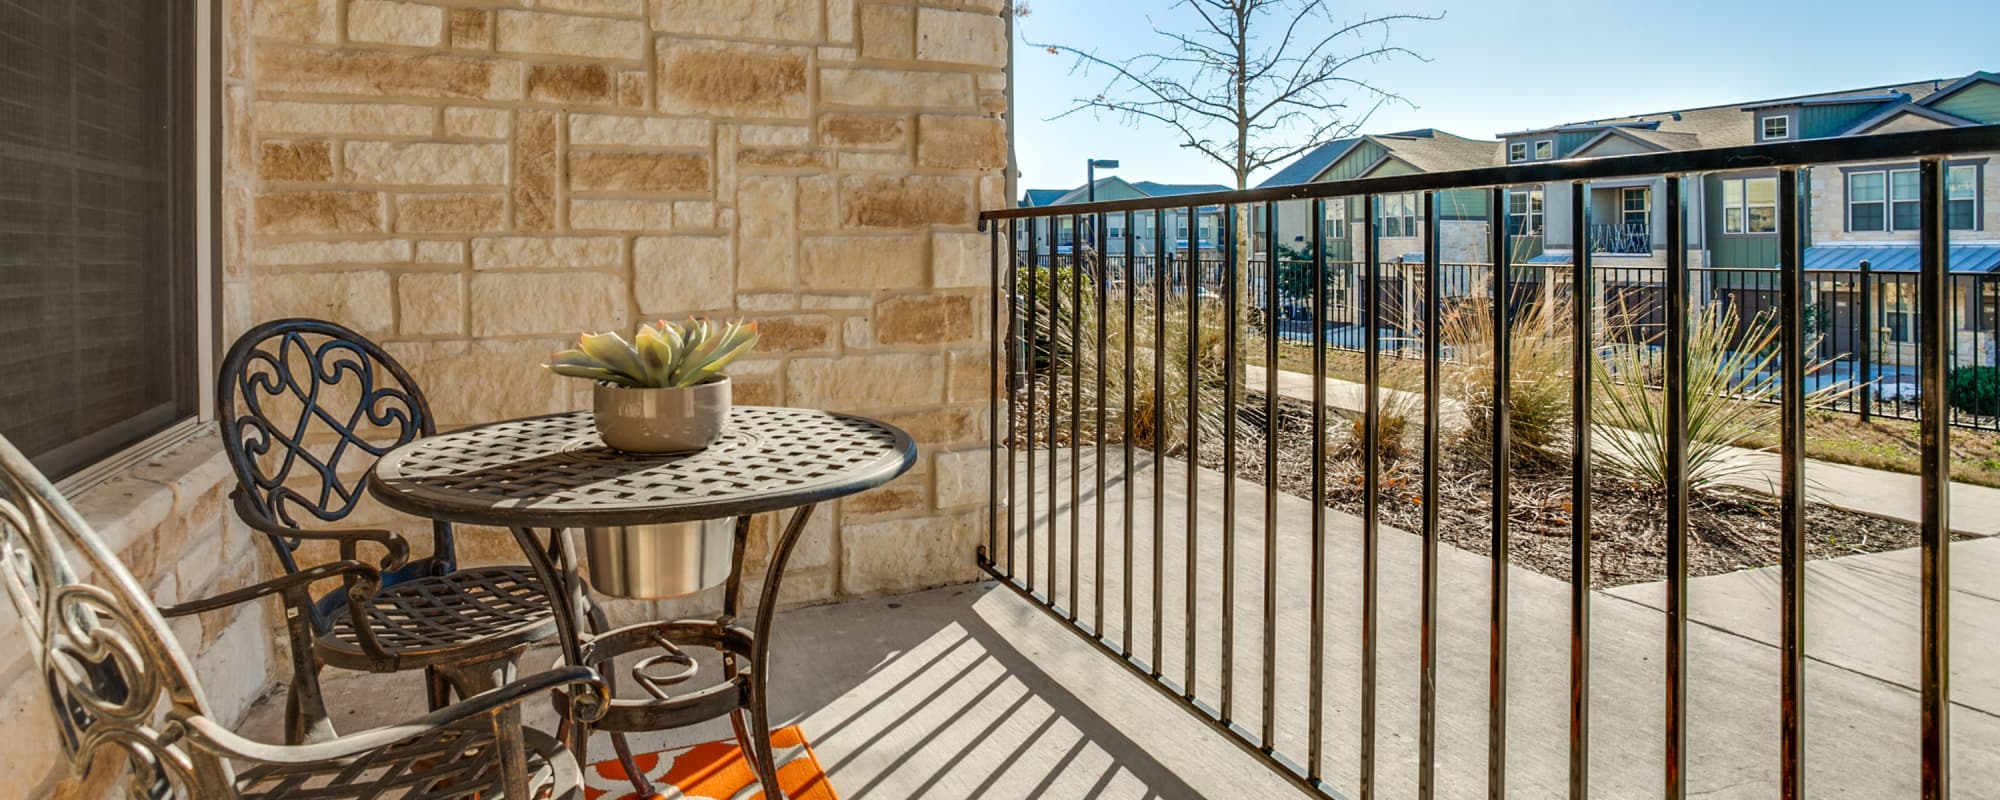 Overlook at Stone Oak Park offers luxury apartments with a private balcony in San Antonio, Texas